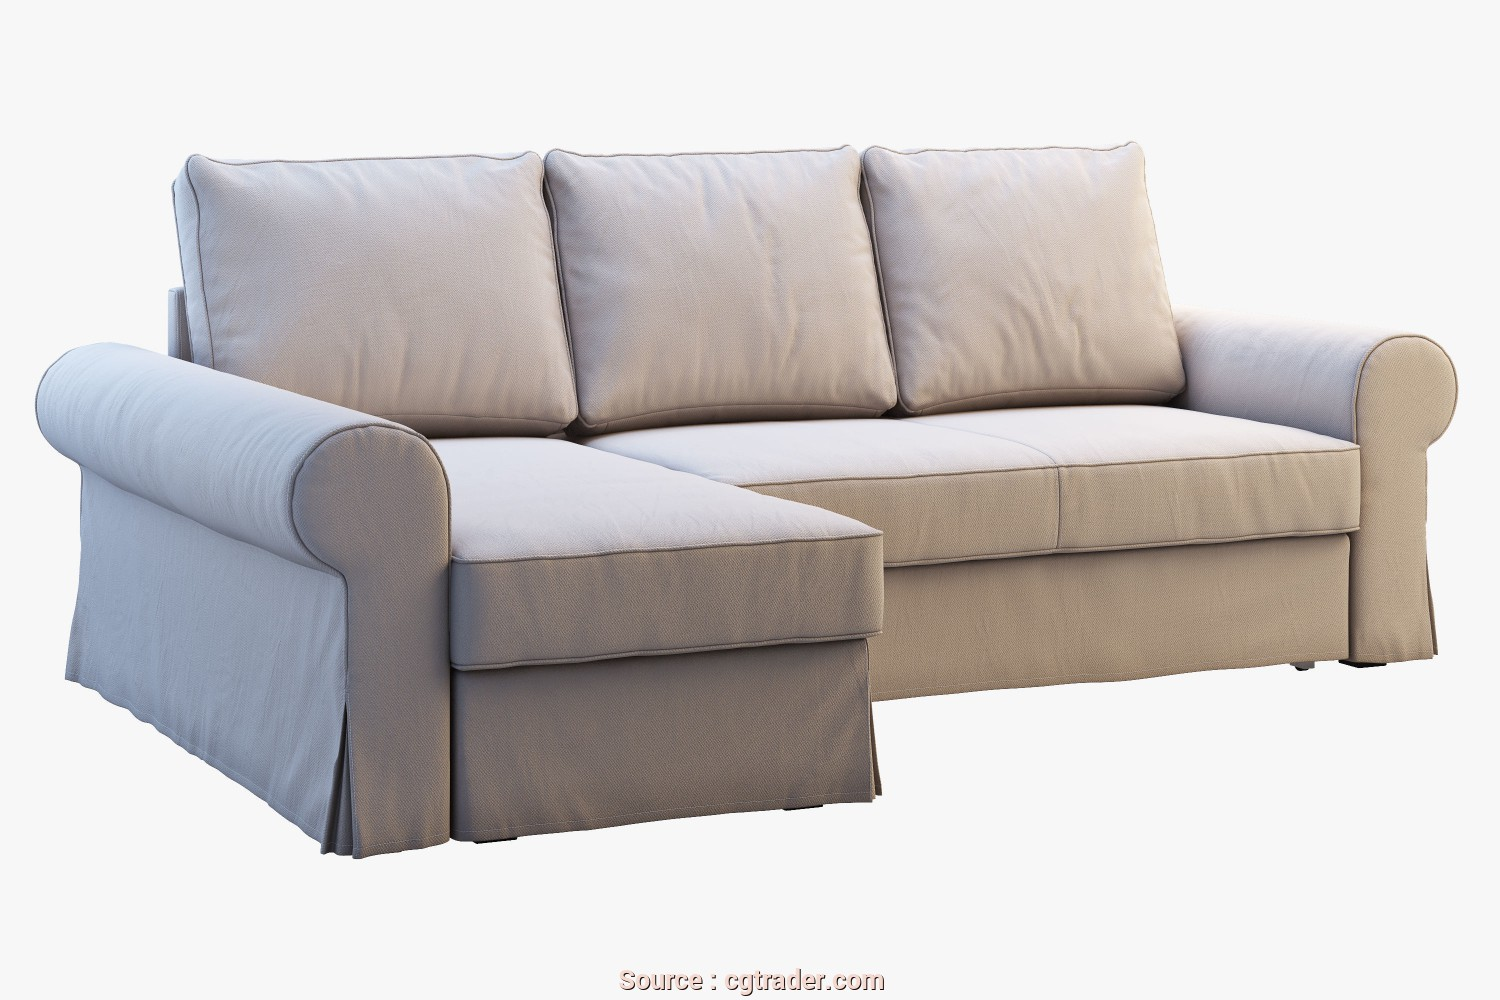 Ikea Backabro Armchair, Costoso Ikea Backabro 2 Sofas, 3D Model